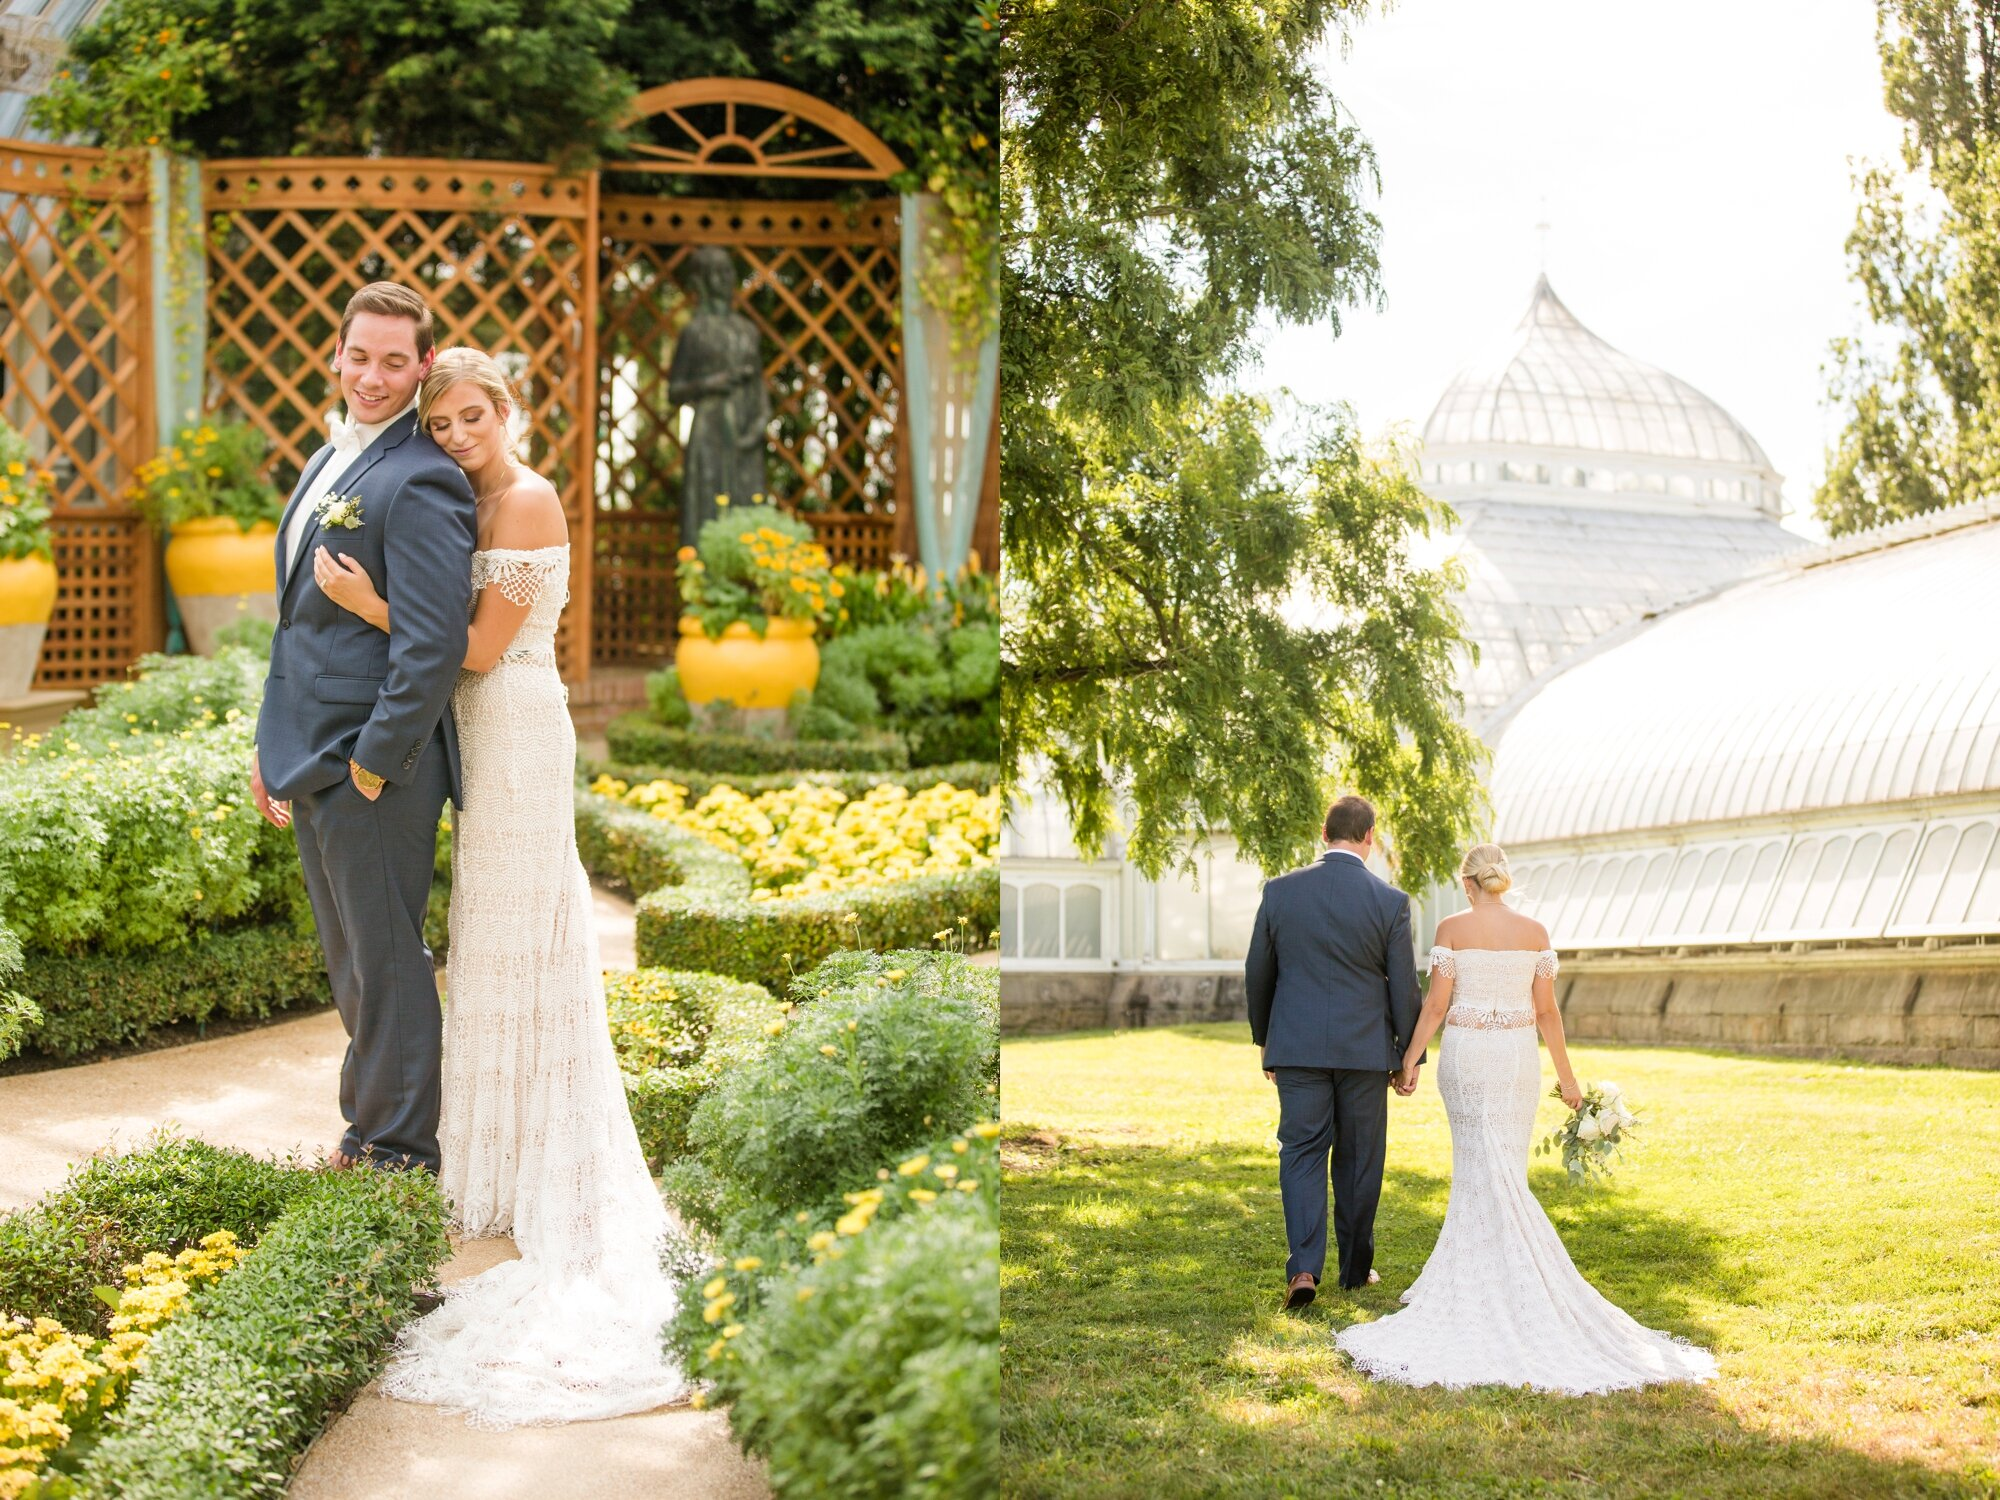 pittsburgh wedding photographer, phipps conservatory wedding photos, broderie room phipps wedding pictures, pittsburgh wedding venues